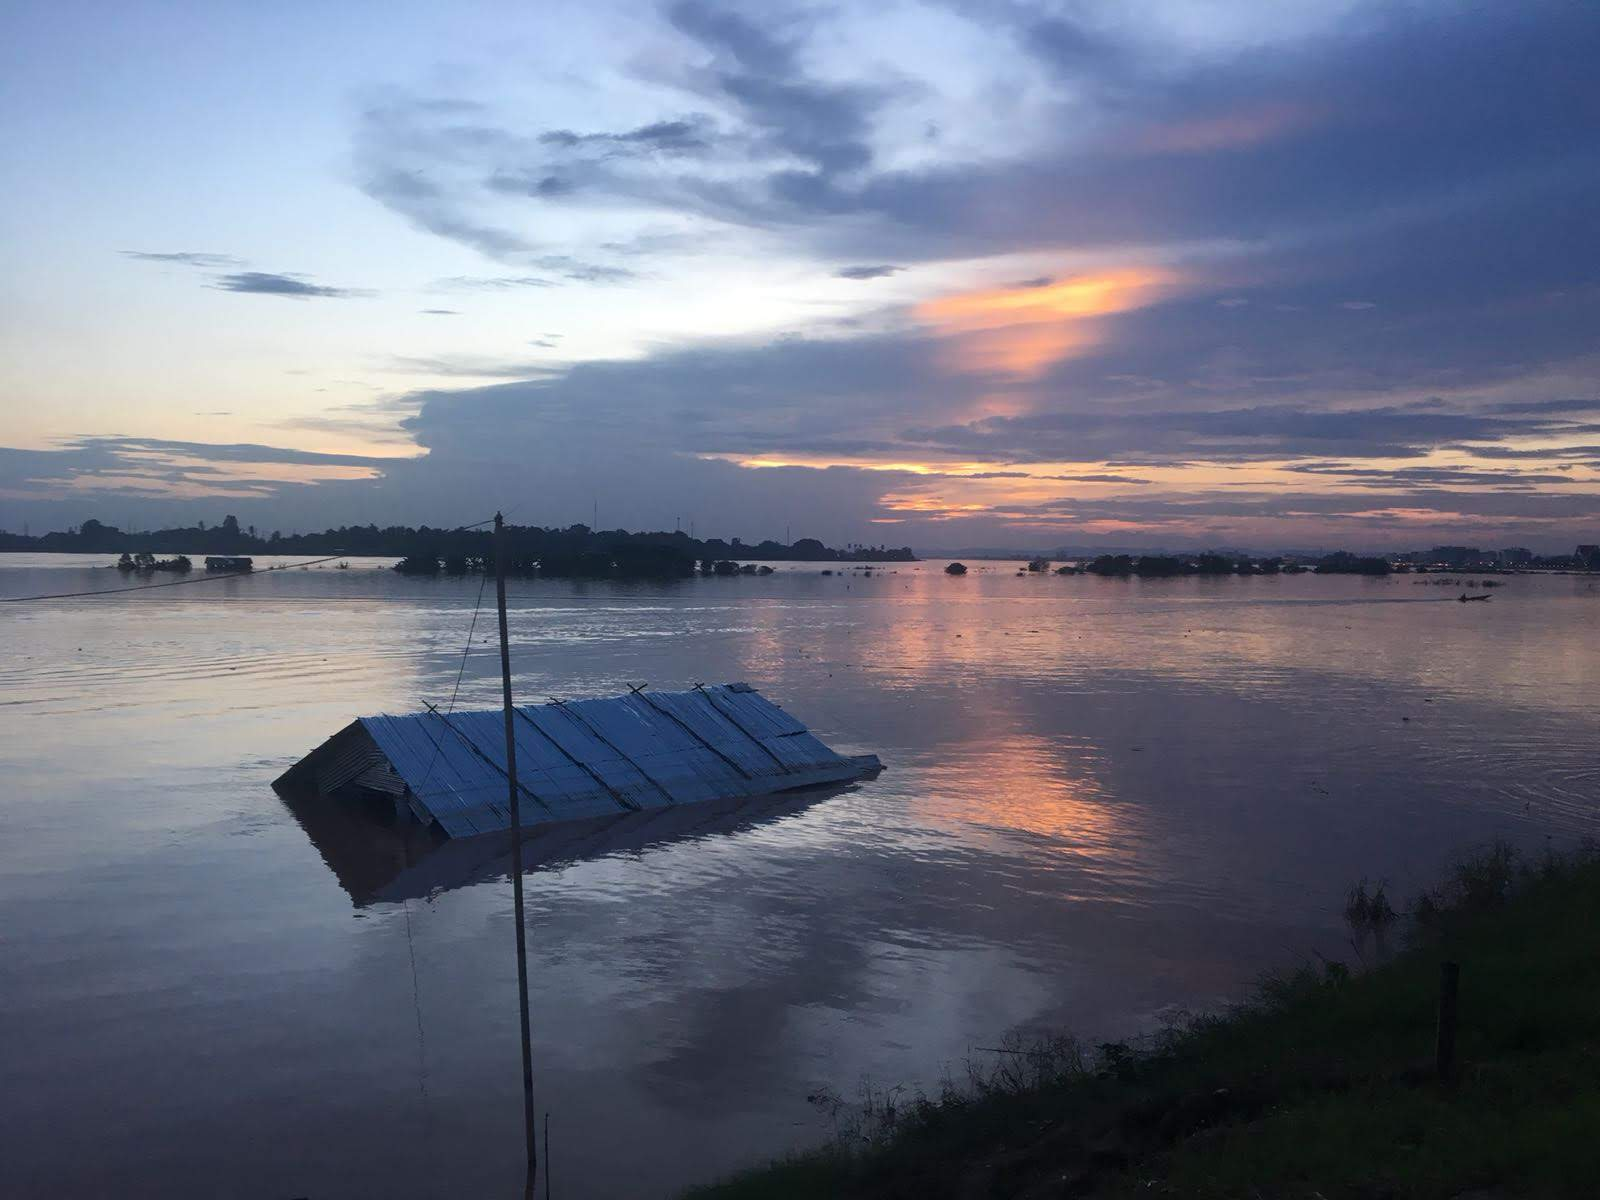 A building submerged in flood waters at dusk.